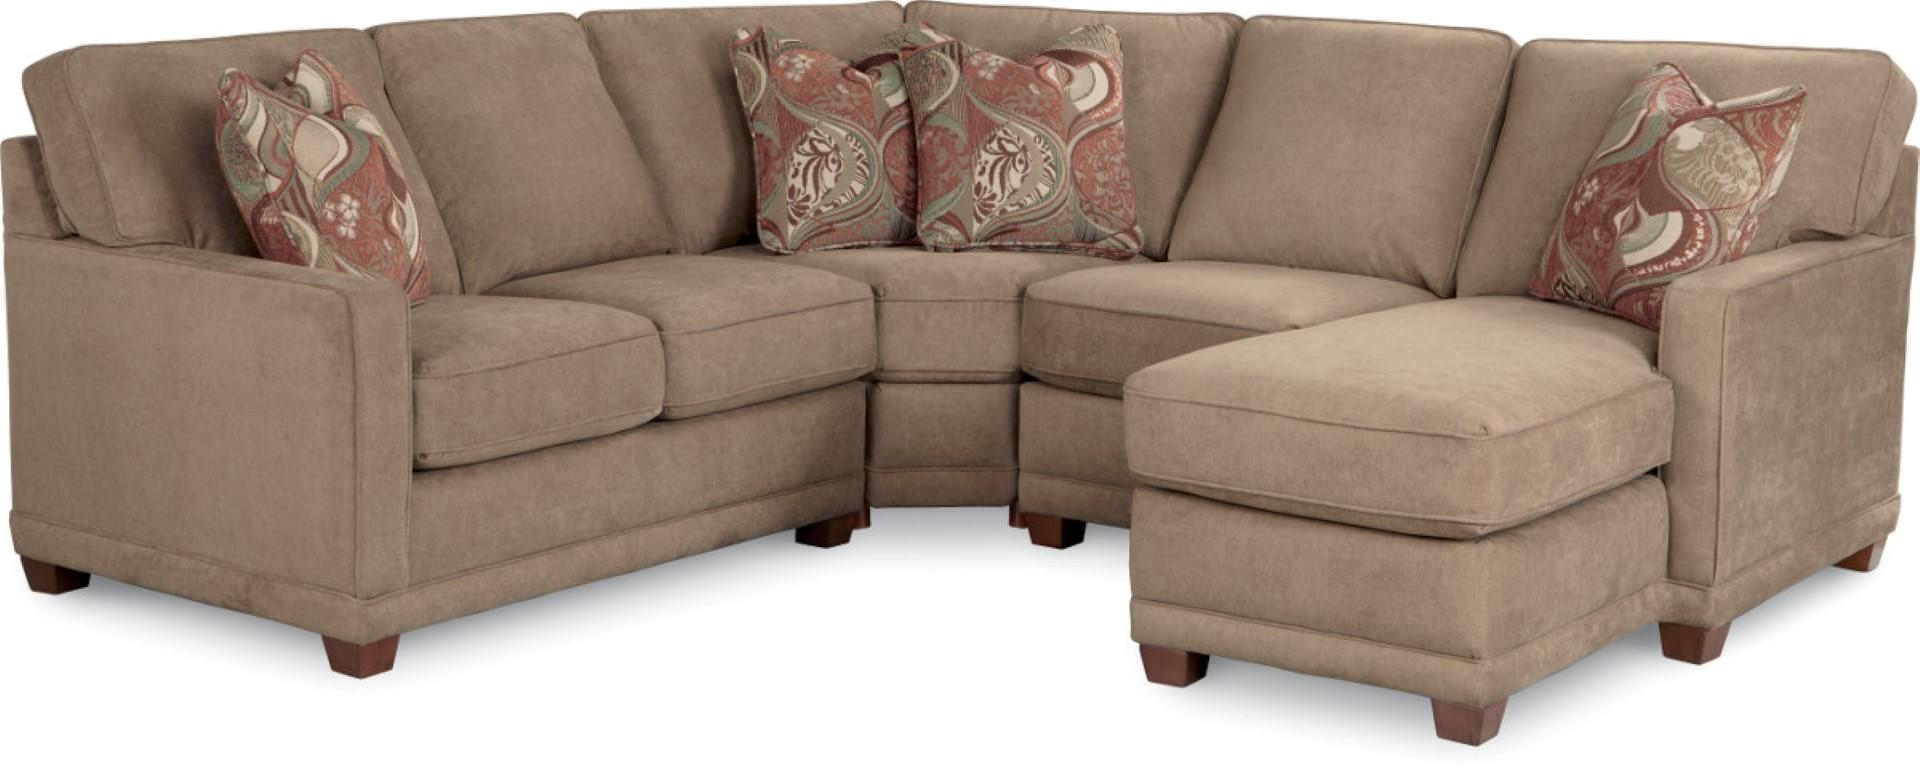 Furniture: Lazyboy Sectional With Cool Various Designs And Colors With Lazyboy Sectional Sofas (Image 7 of 20)